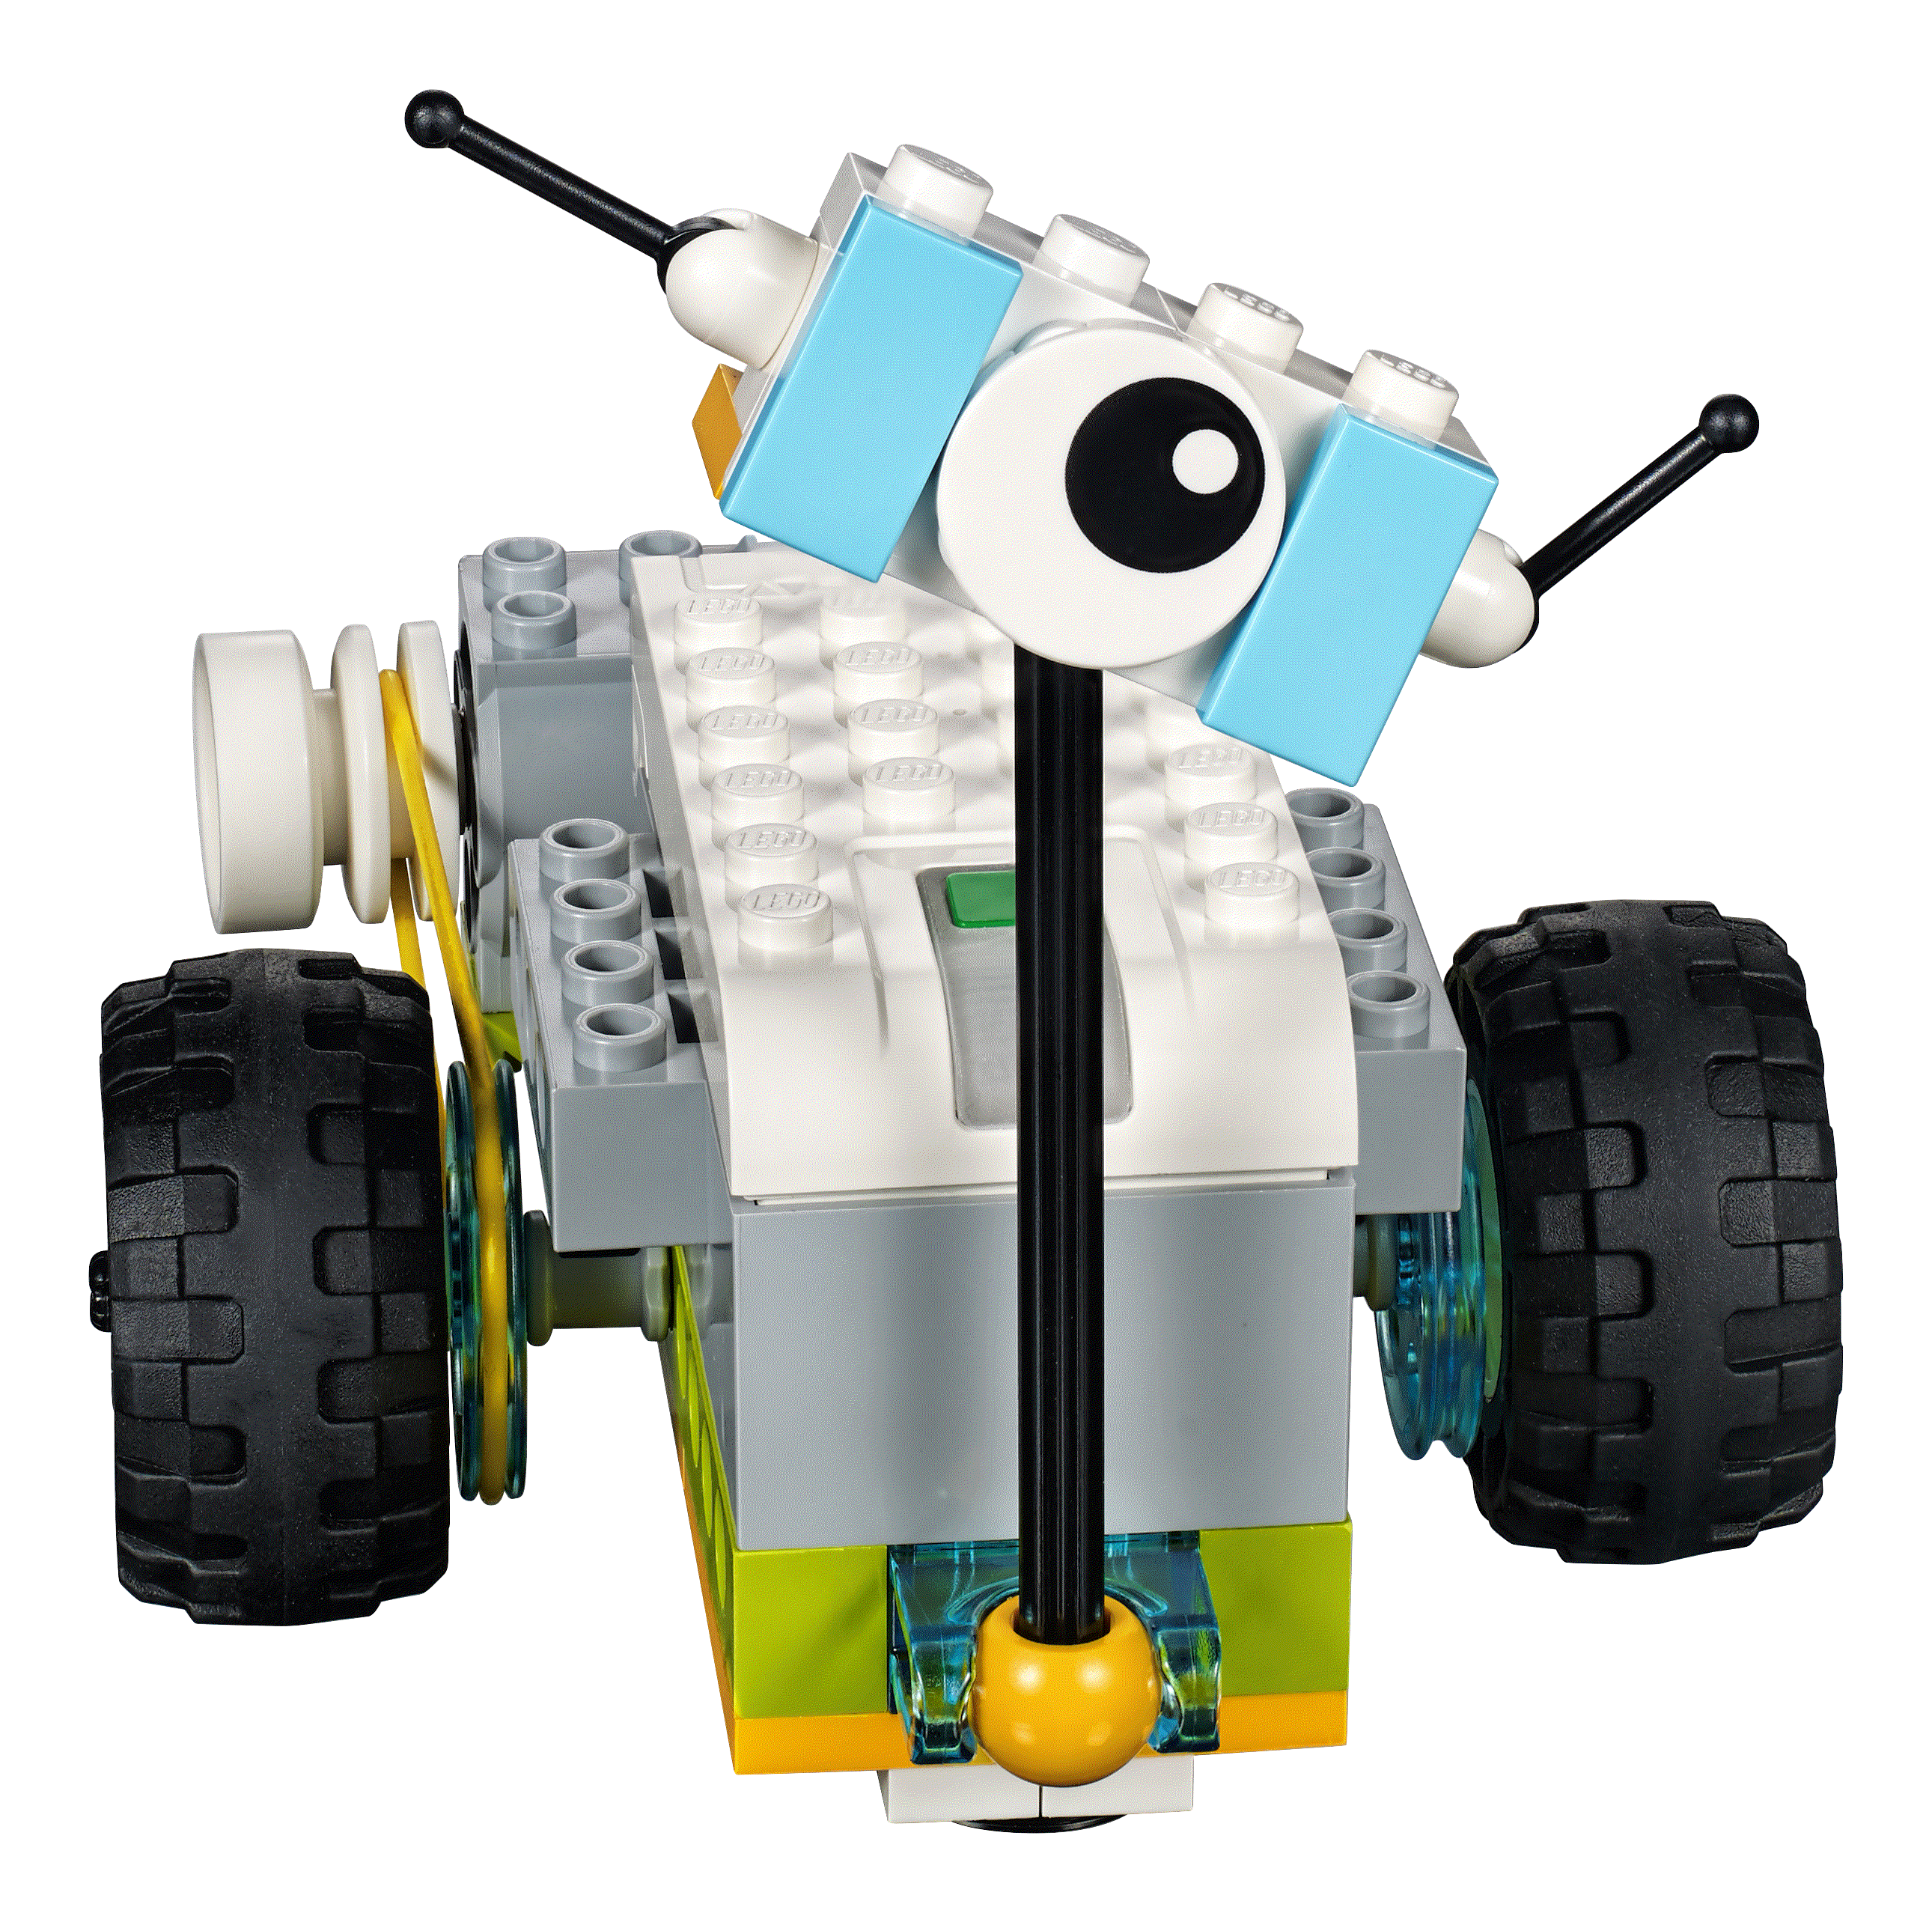 LEGO® Education WeDo 2.0